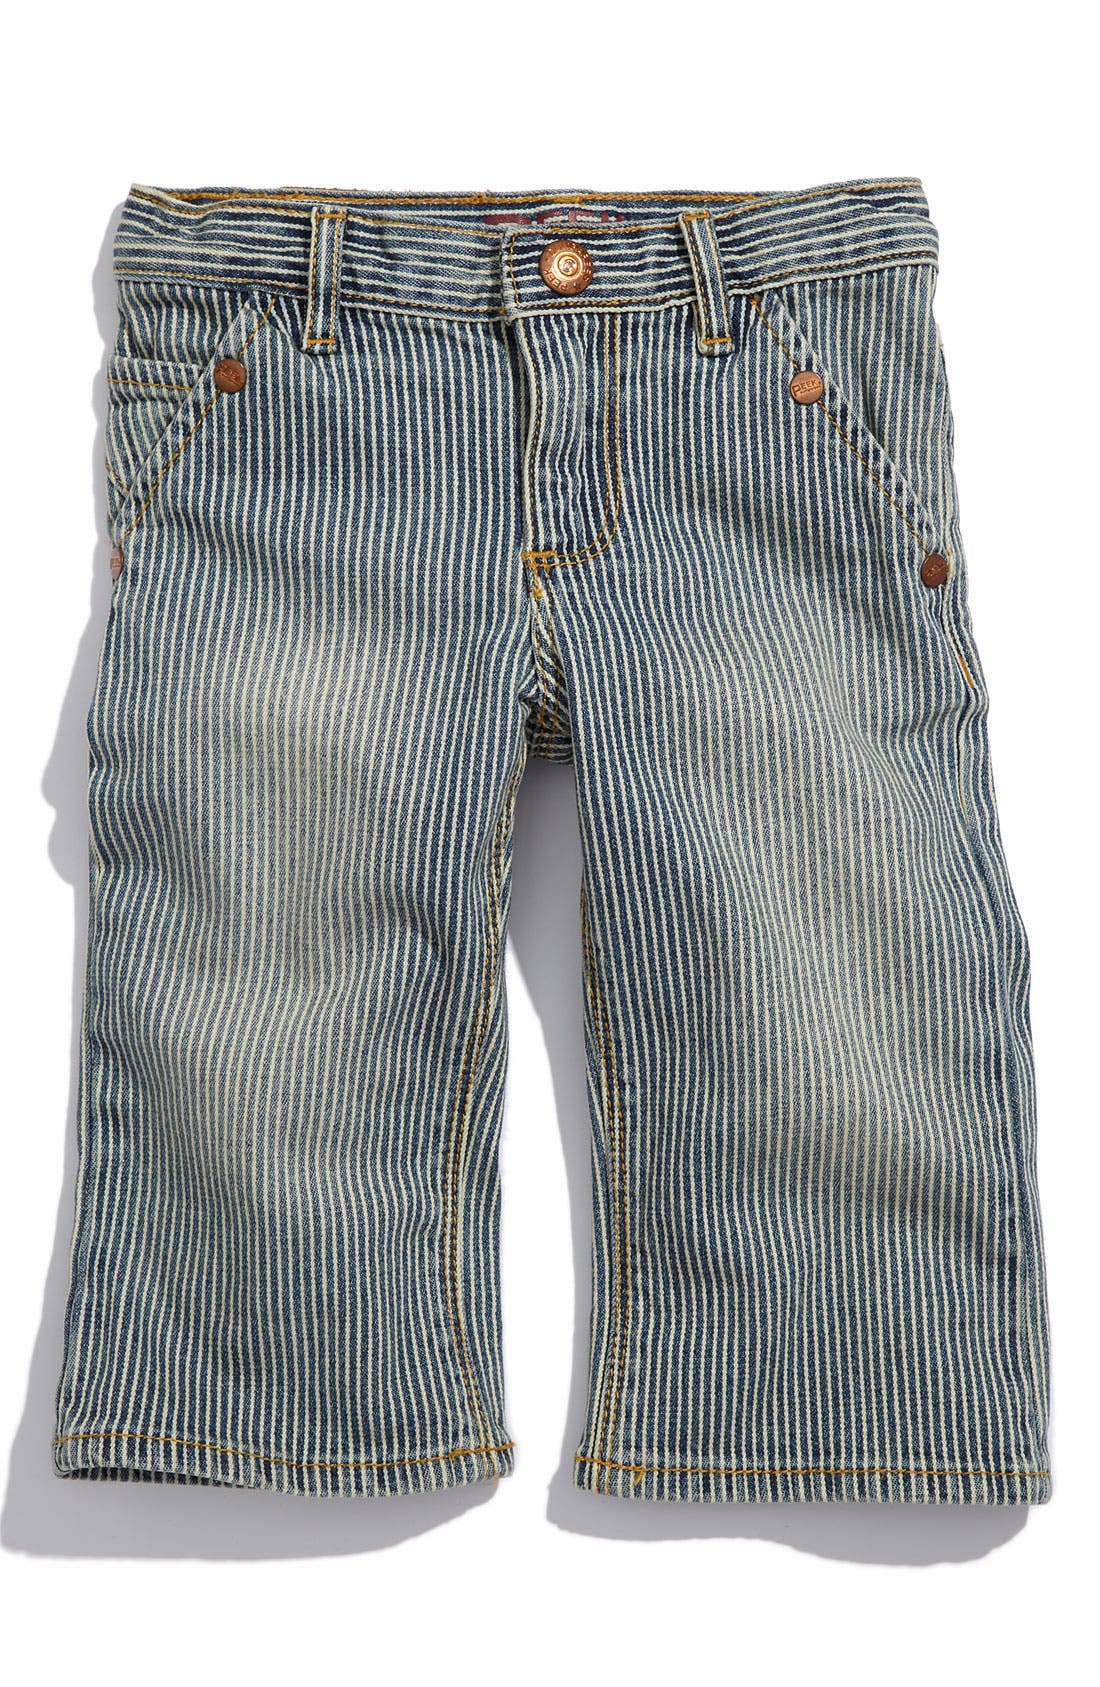 Alternate Image 2  - Peek 'Big Peanut' Jeans (Infant)